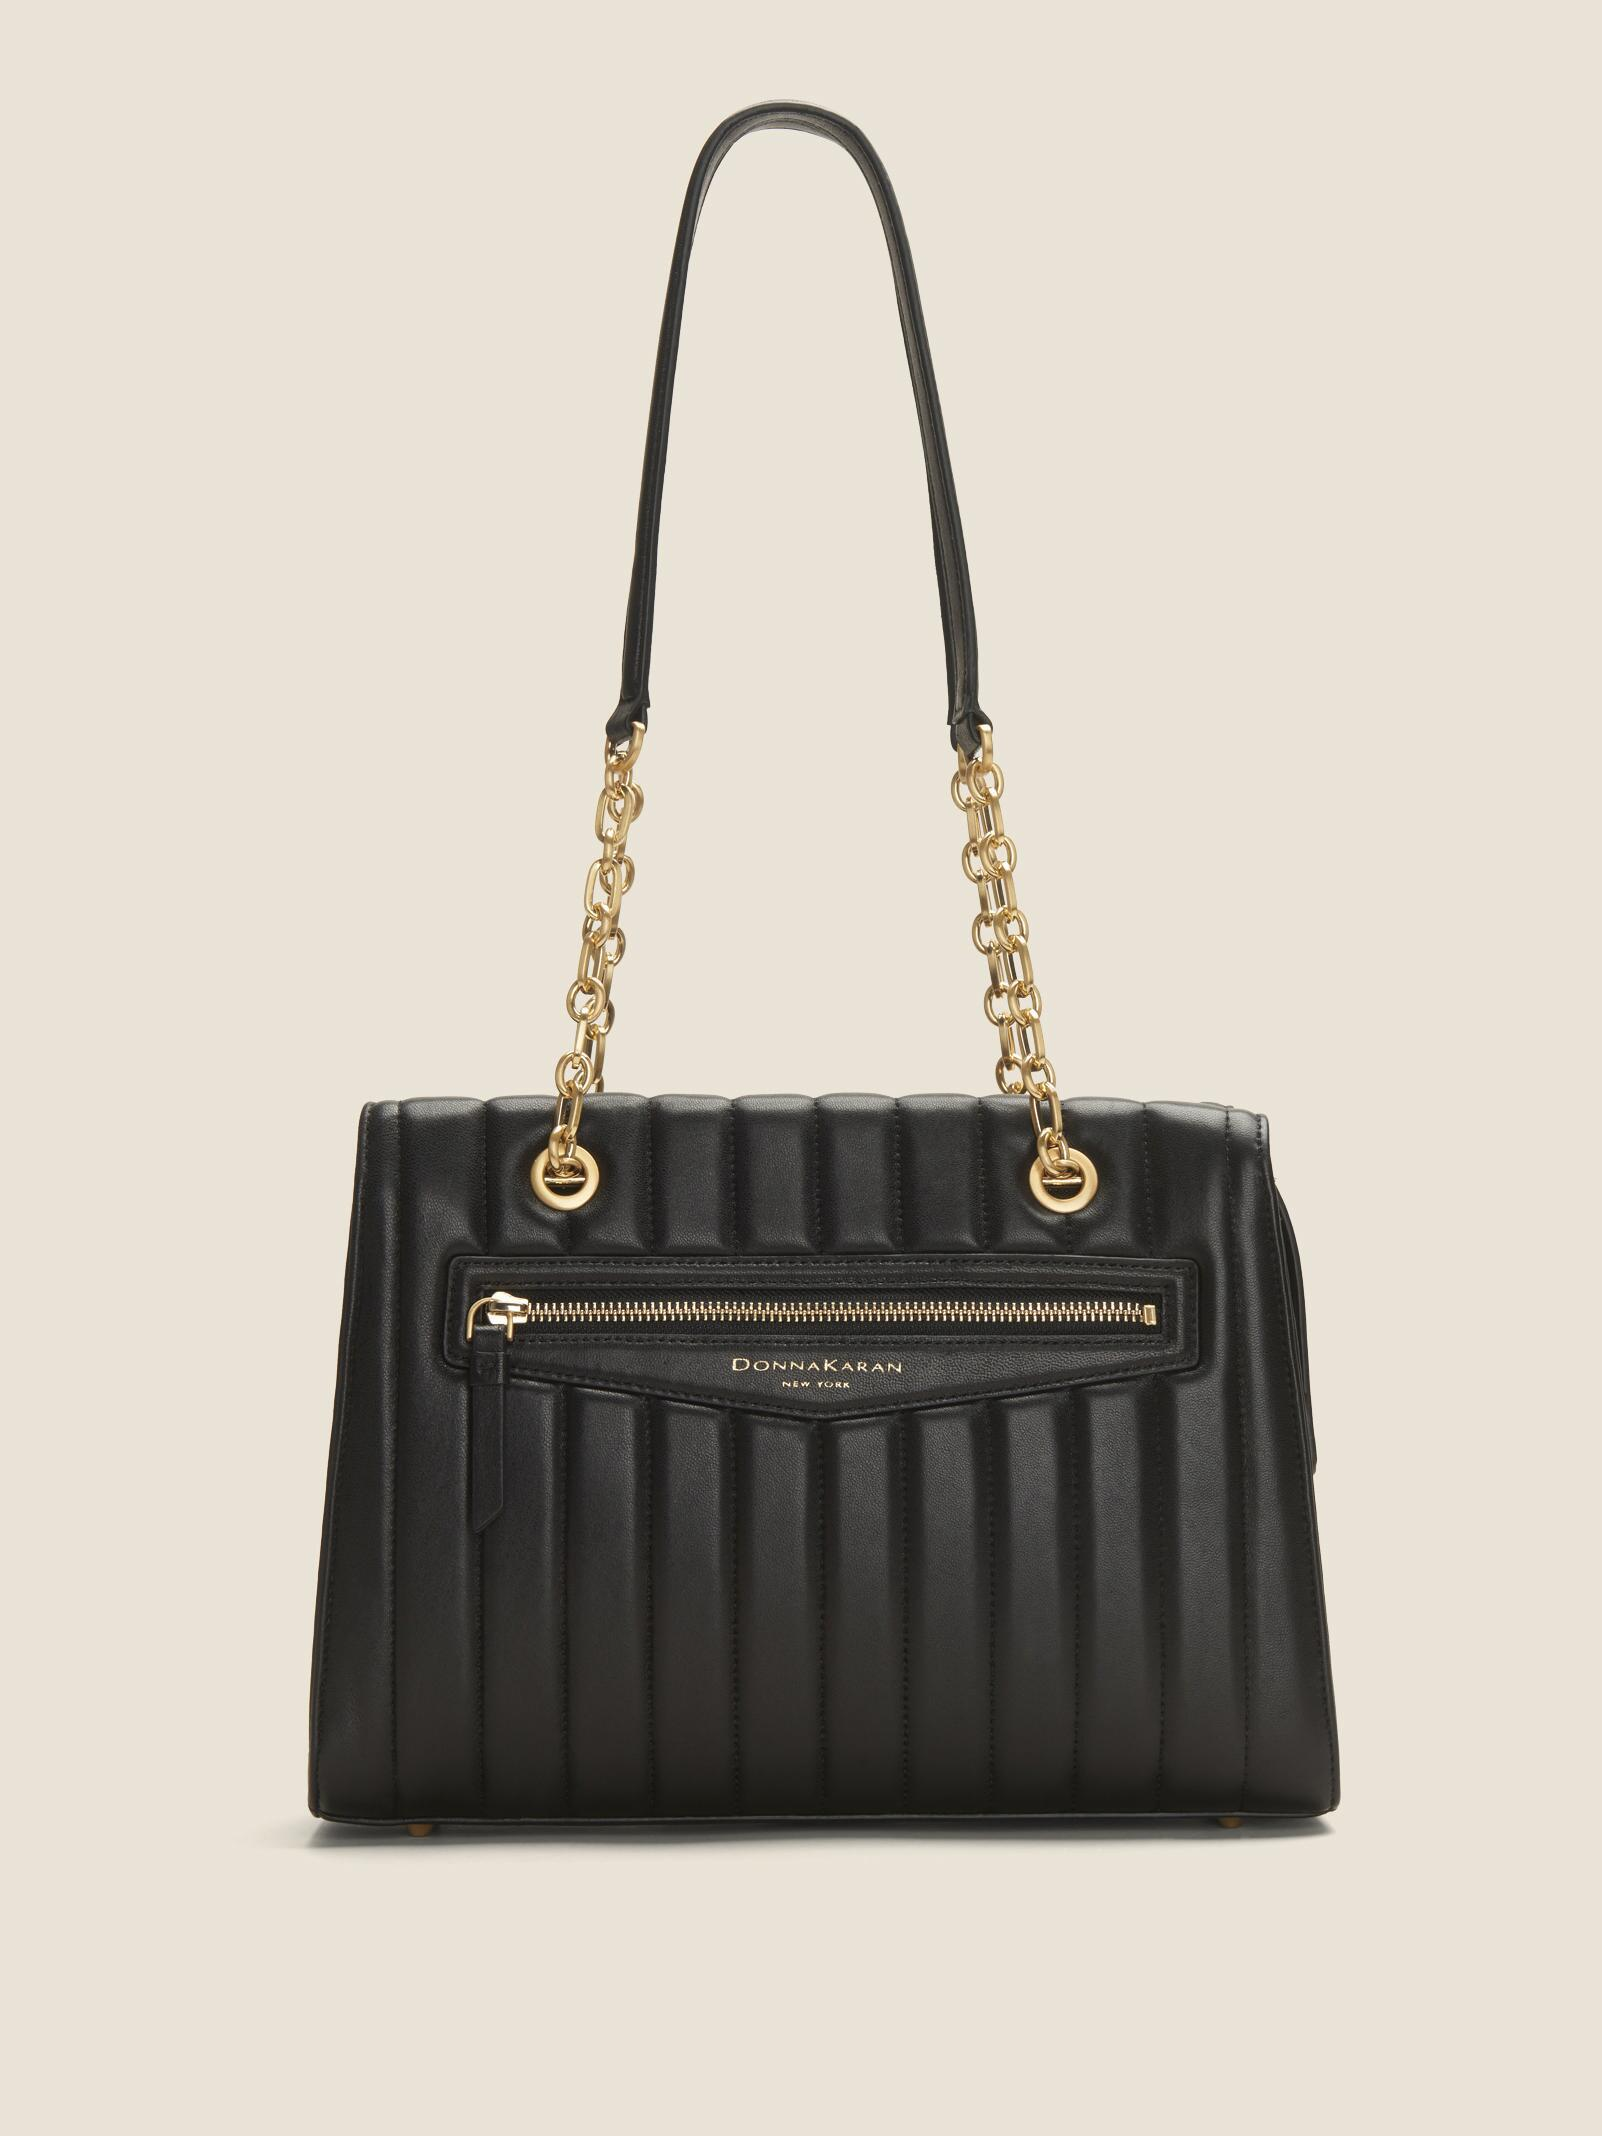 DKNY Sam Large Leather Tote Bag Free Shipping Discounts Buy Cheap Explore Free Shipping Really GSdeP